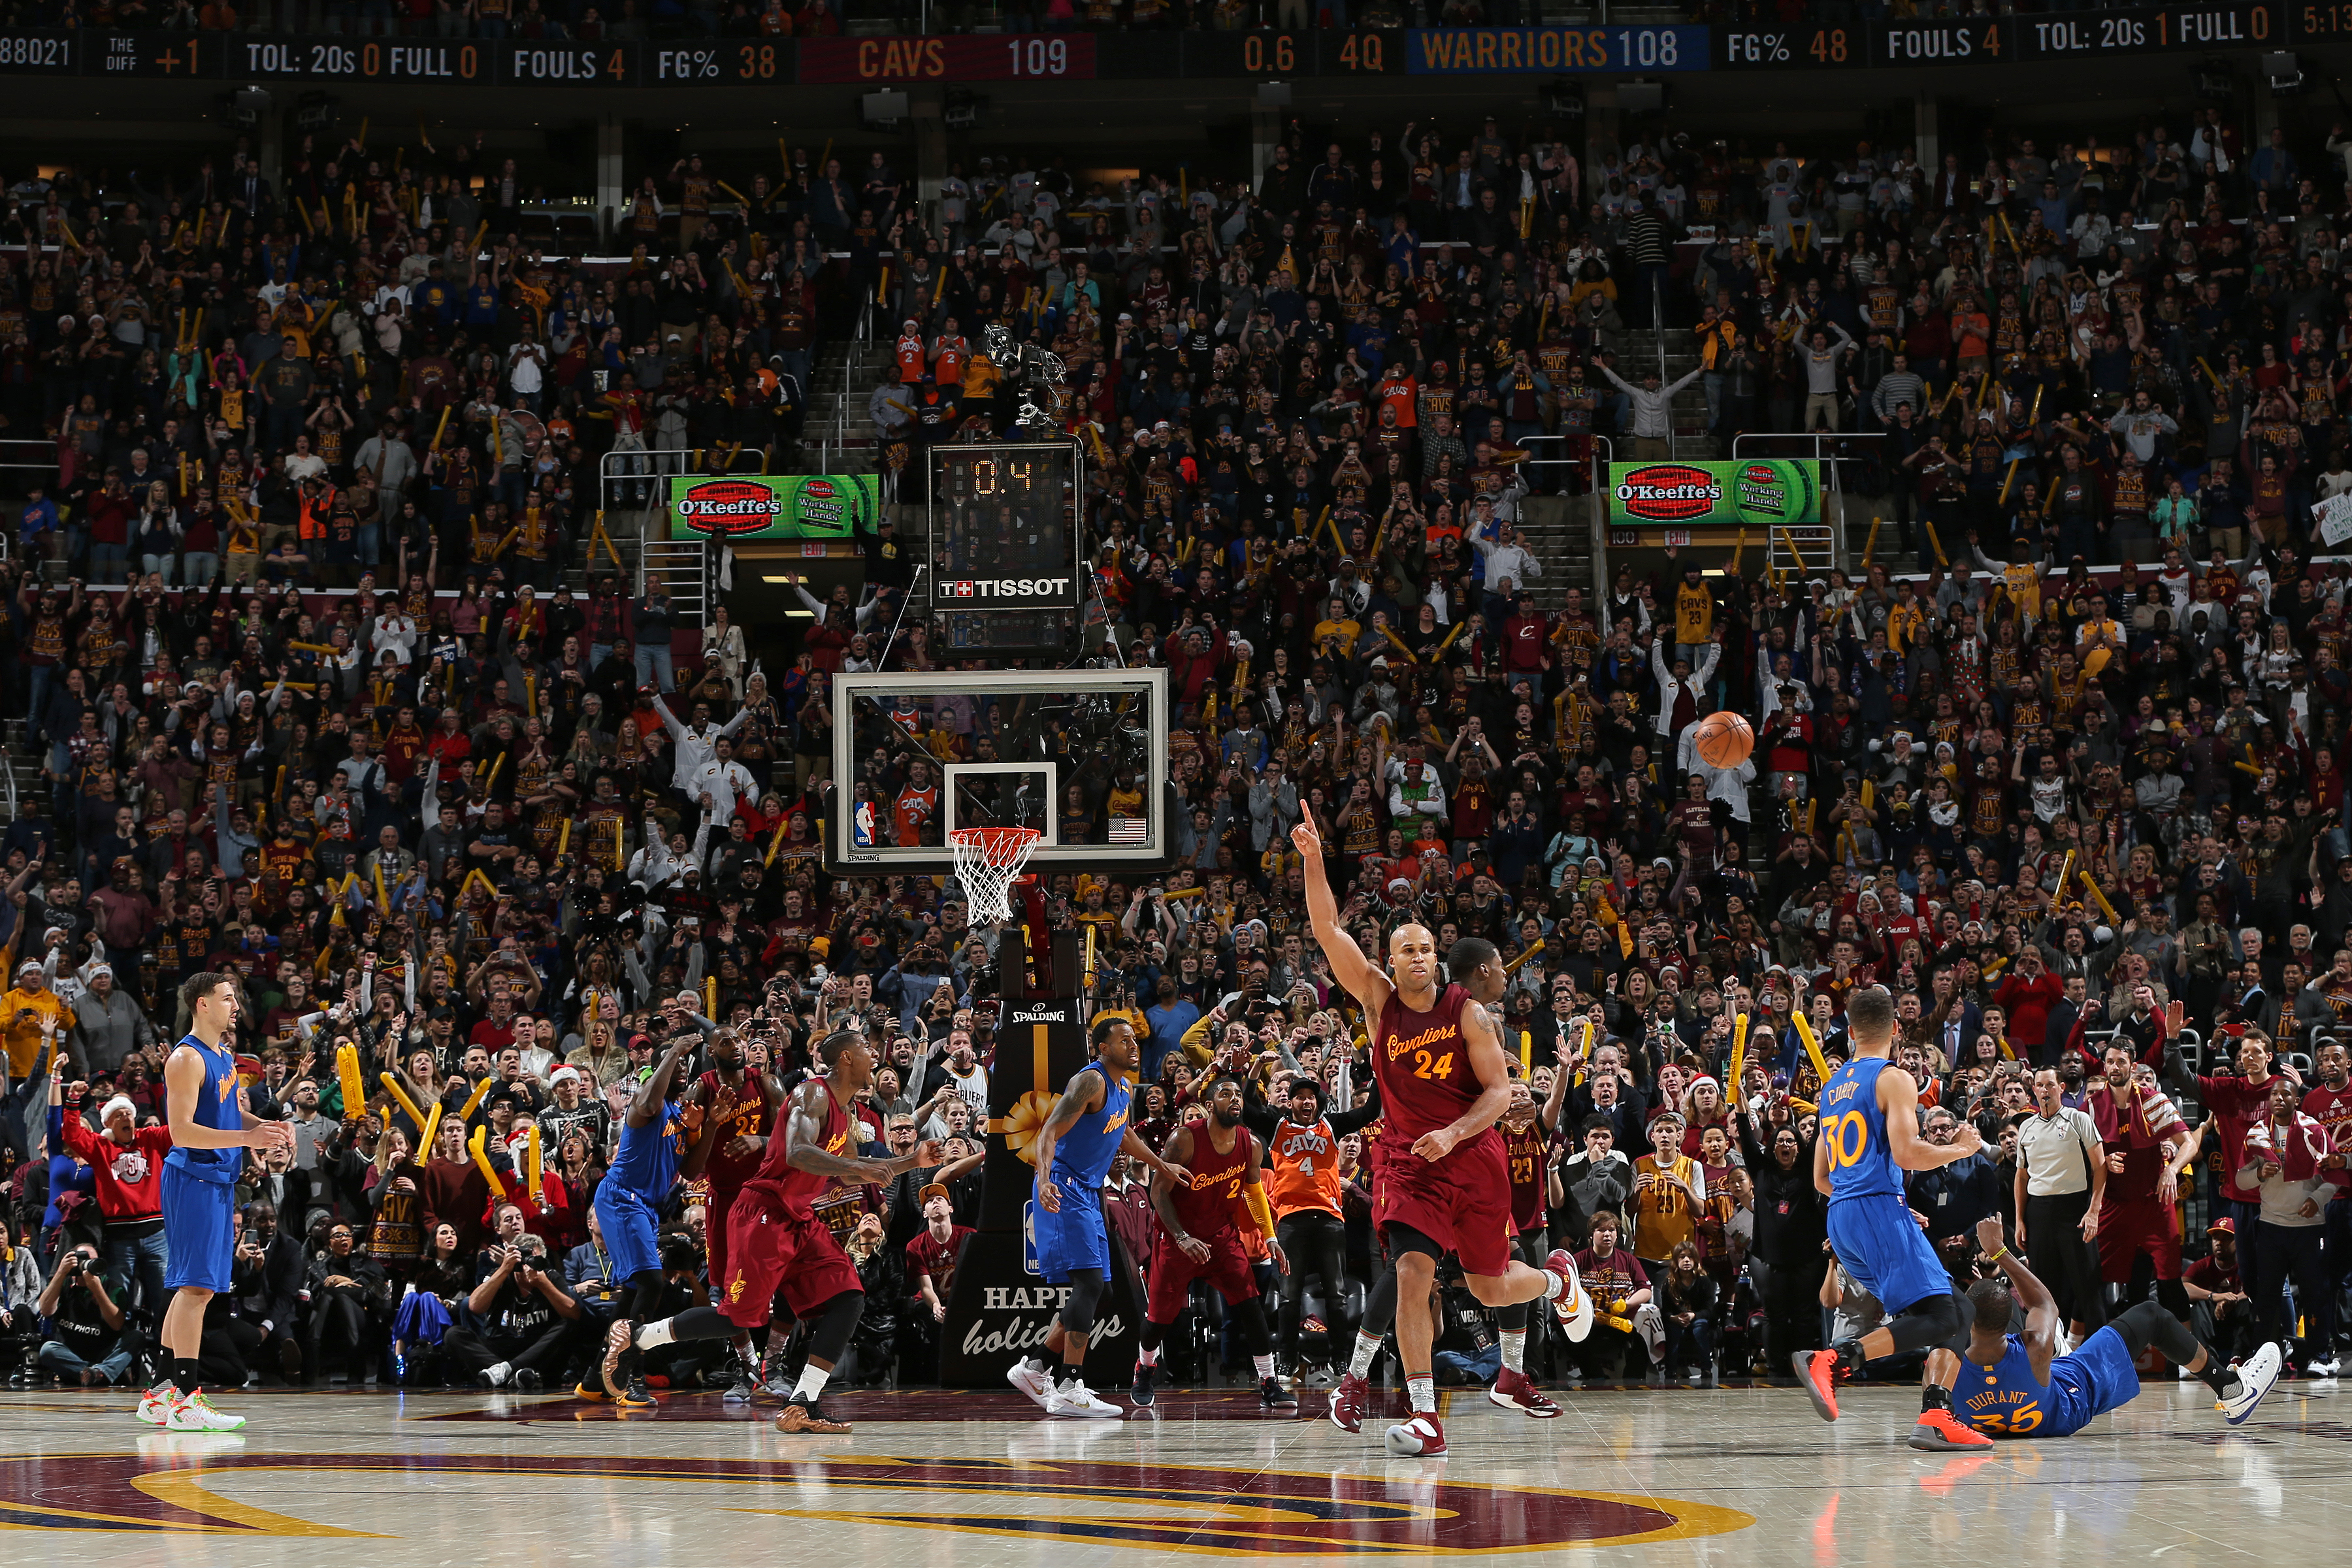 Durant leads Warriors over Utah, Cavs fall to Kings